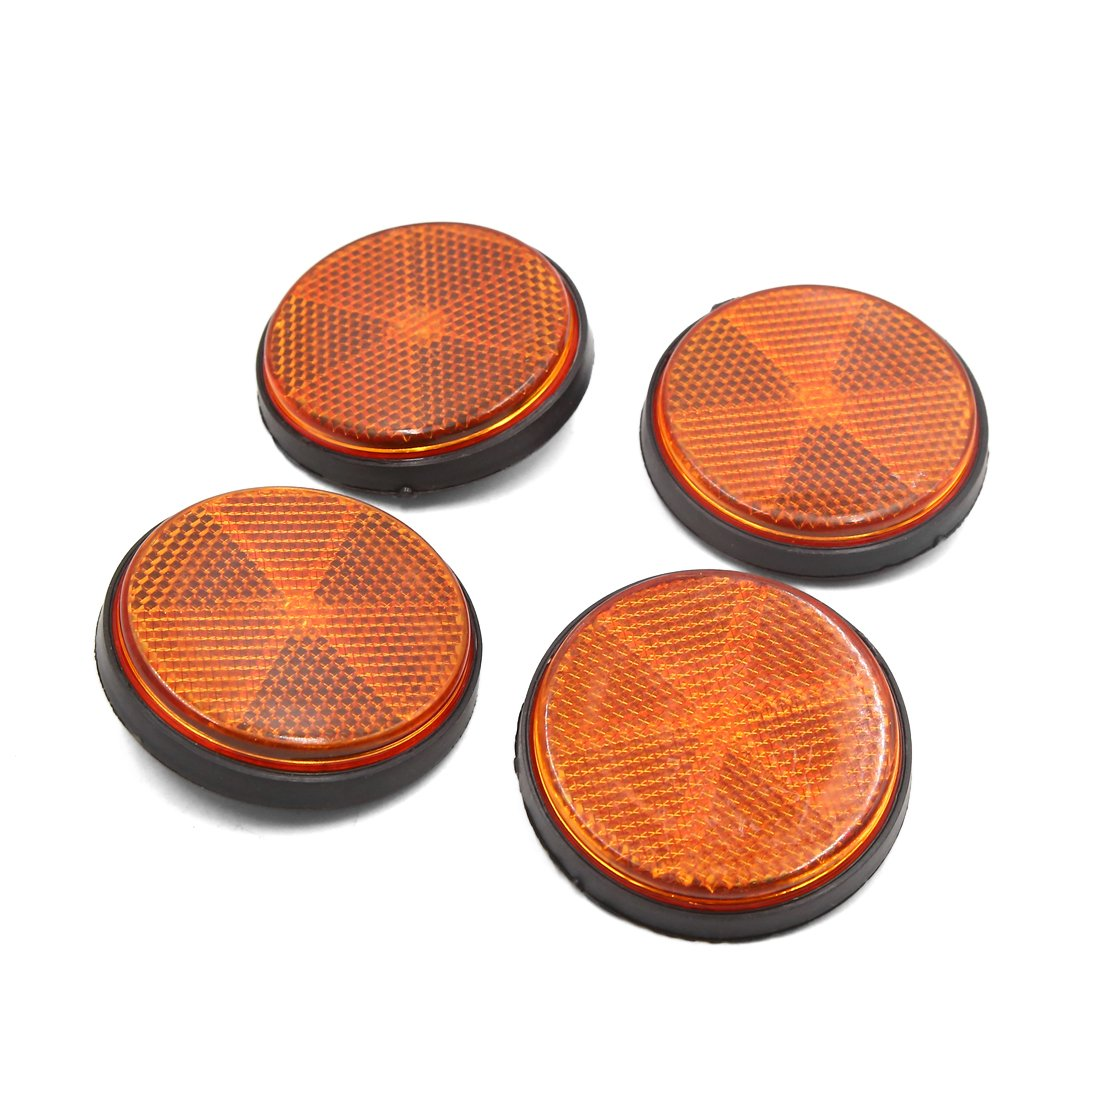 Sourcingmap 4pcs 6mm Thread Dia Round Type Reflective Warning Film for Motorcycle Amber a18040200ux0087